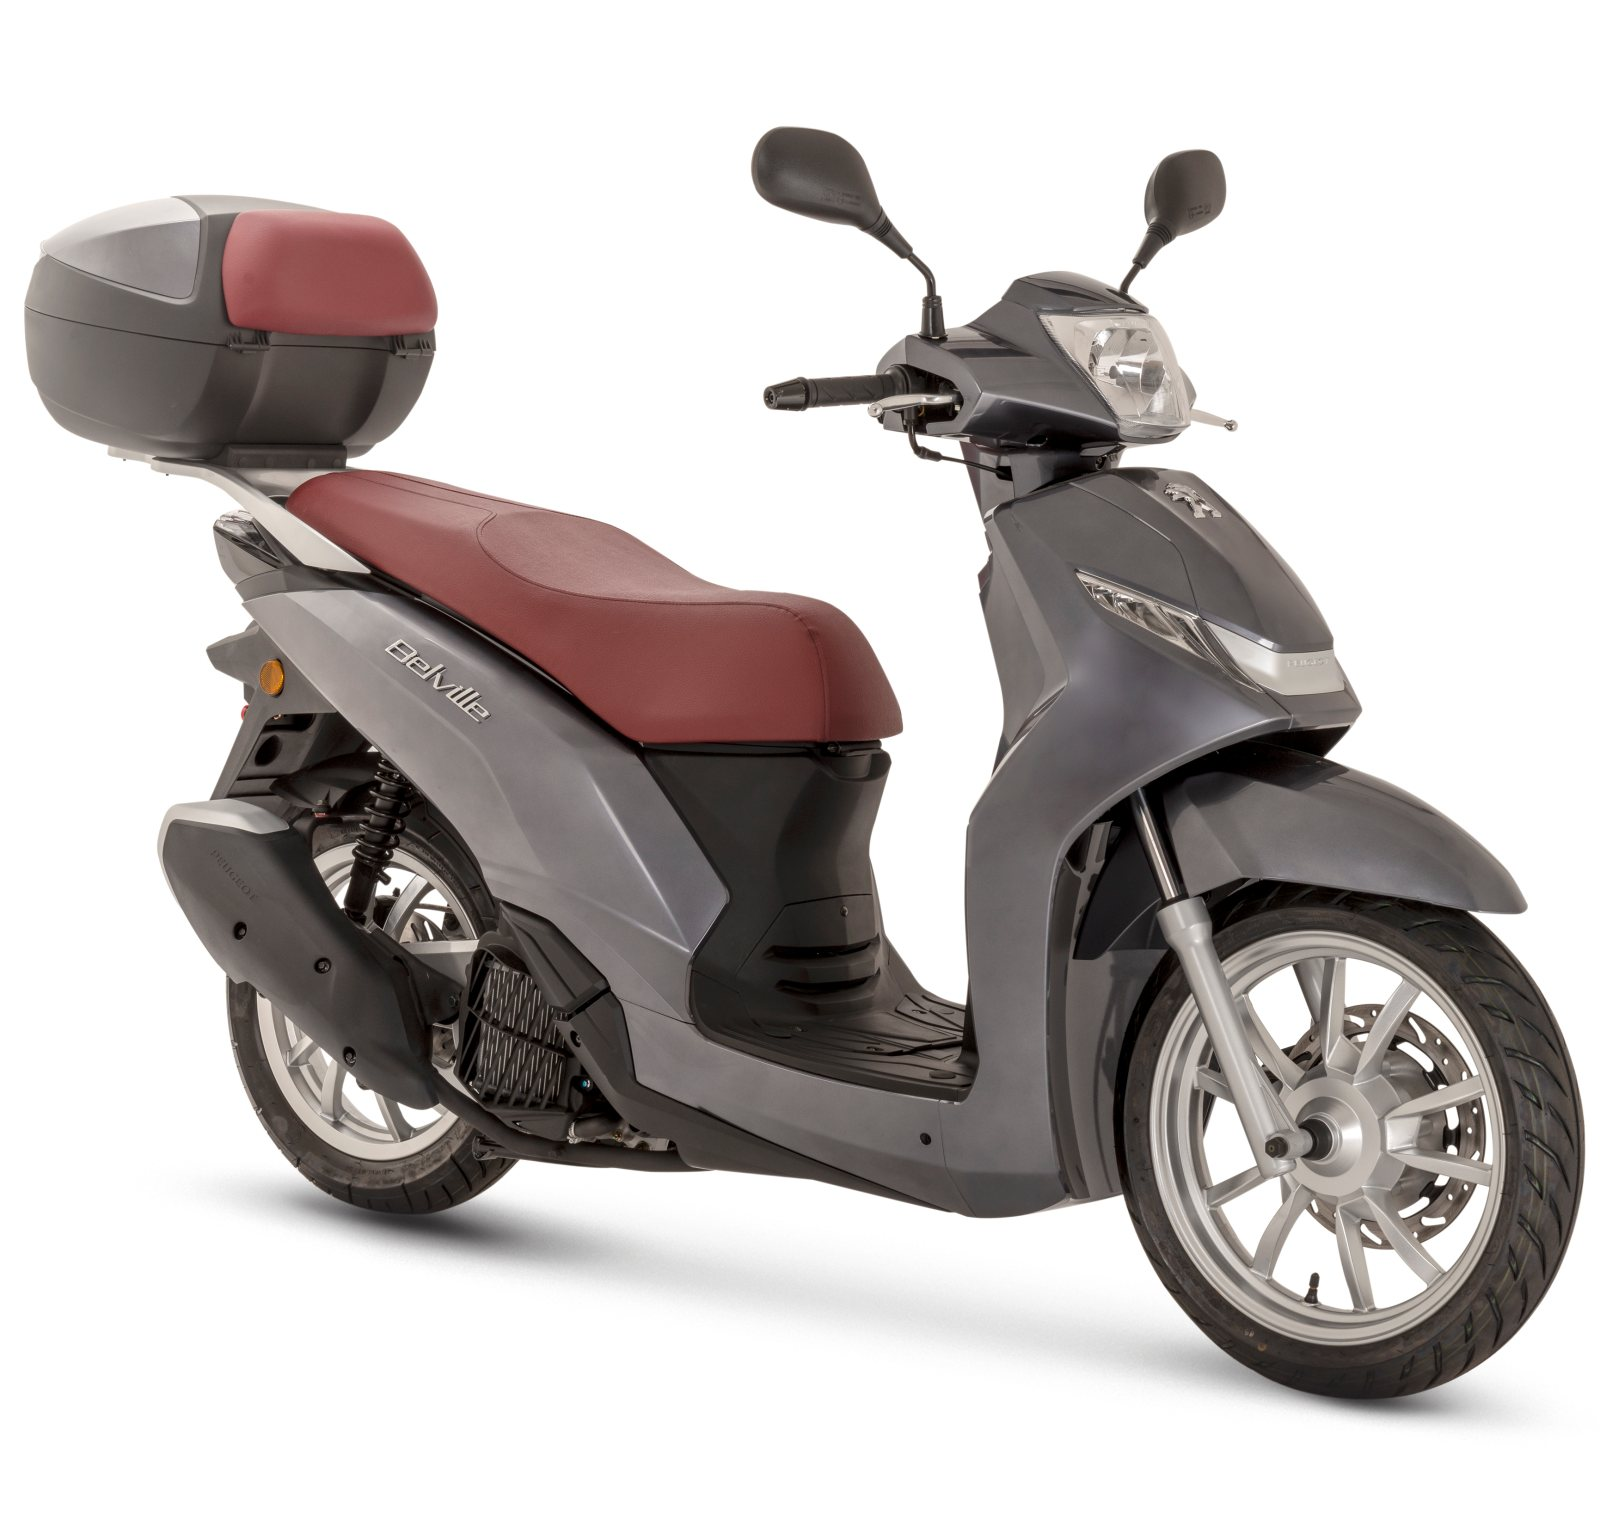 Belville 125i Allure ABS - Onyx Grey